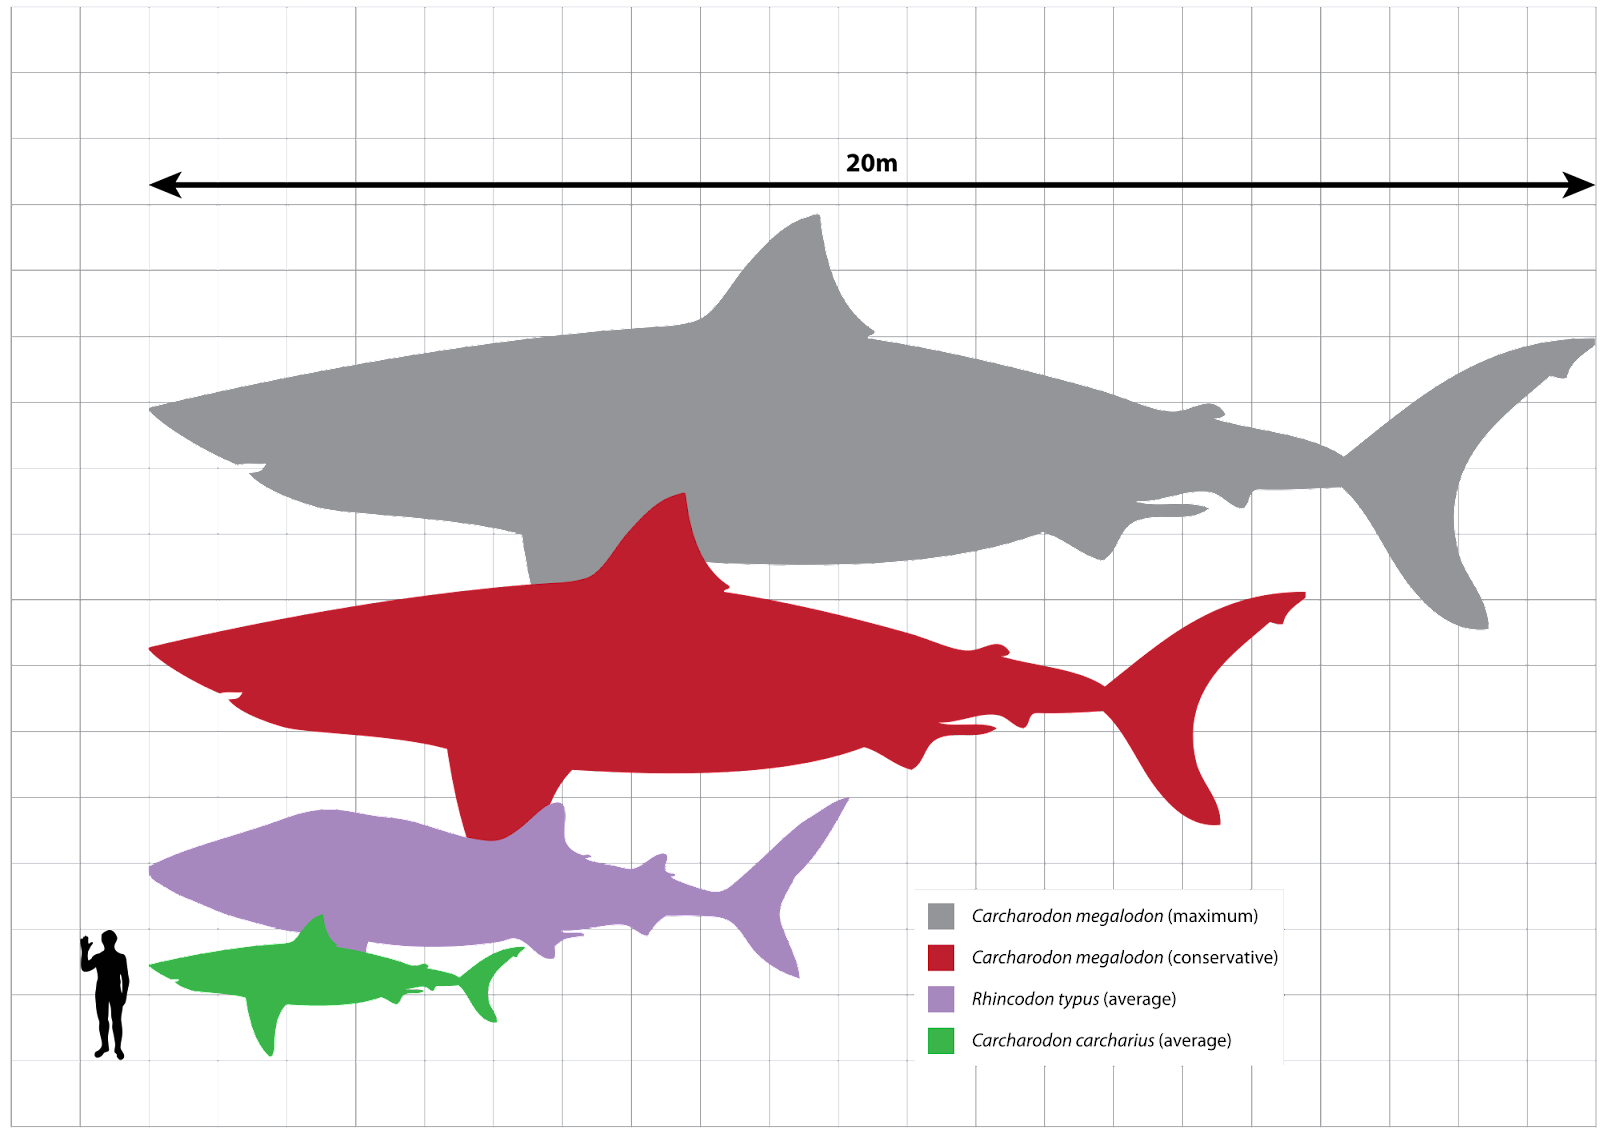 https://upload.wikimedia.org/wikipedia/commons/thumb/4/4d/Megalodon_scale.svg/2000px-Megalodon_scale.svg.png